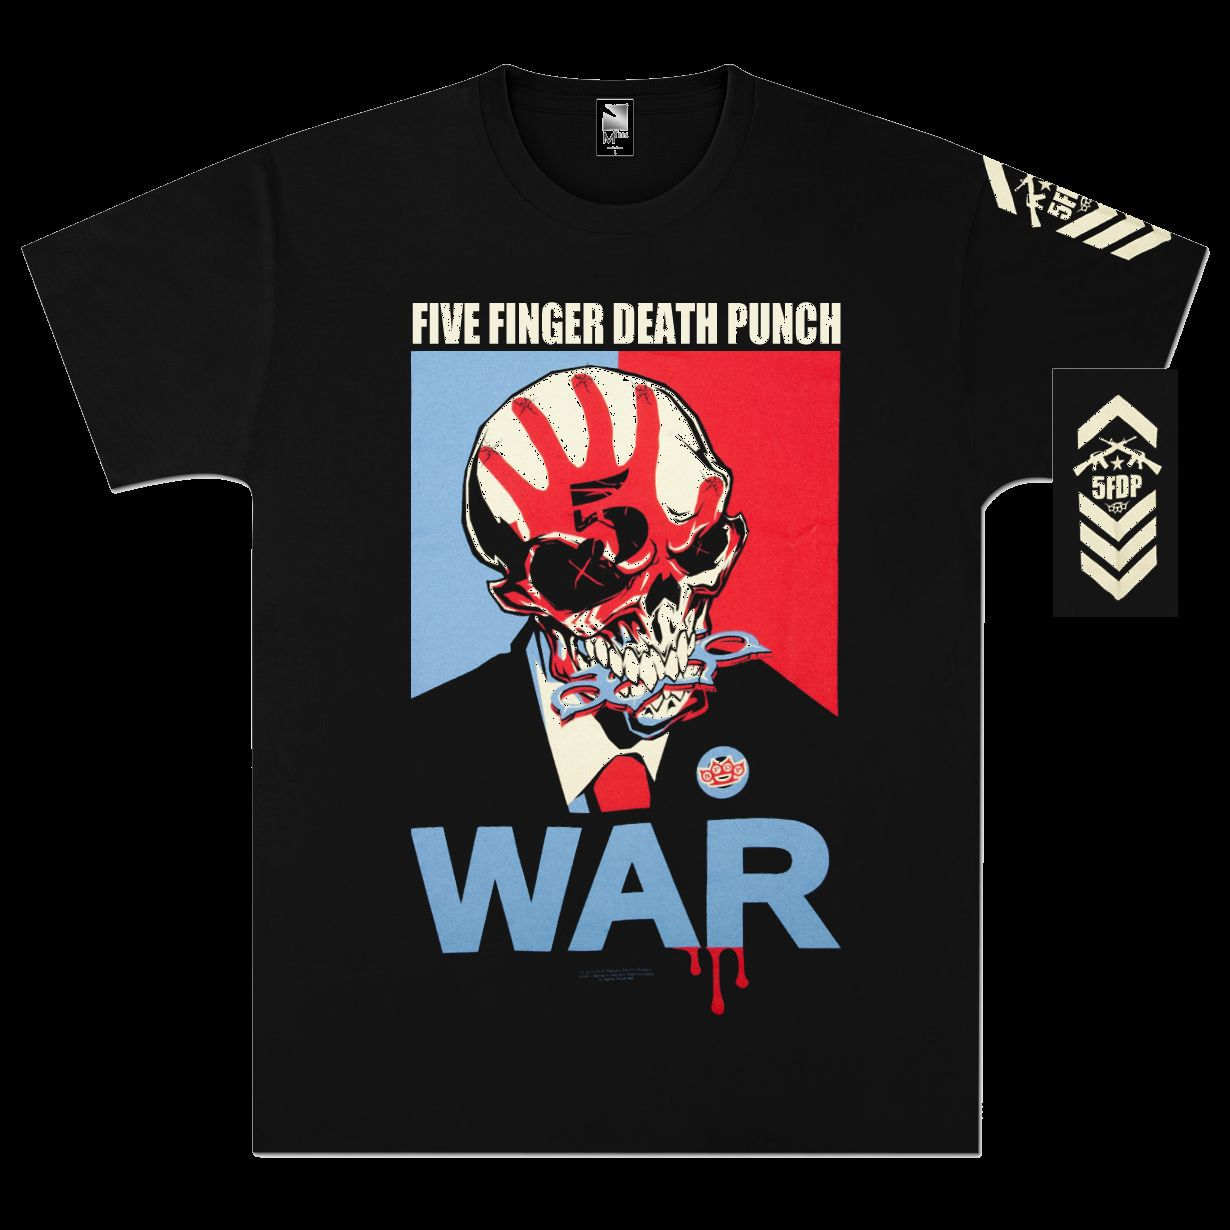 Five Finger Death Punch War T-Shirt